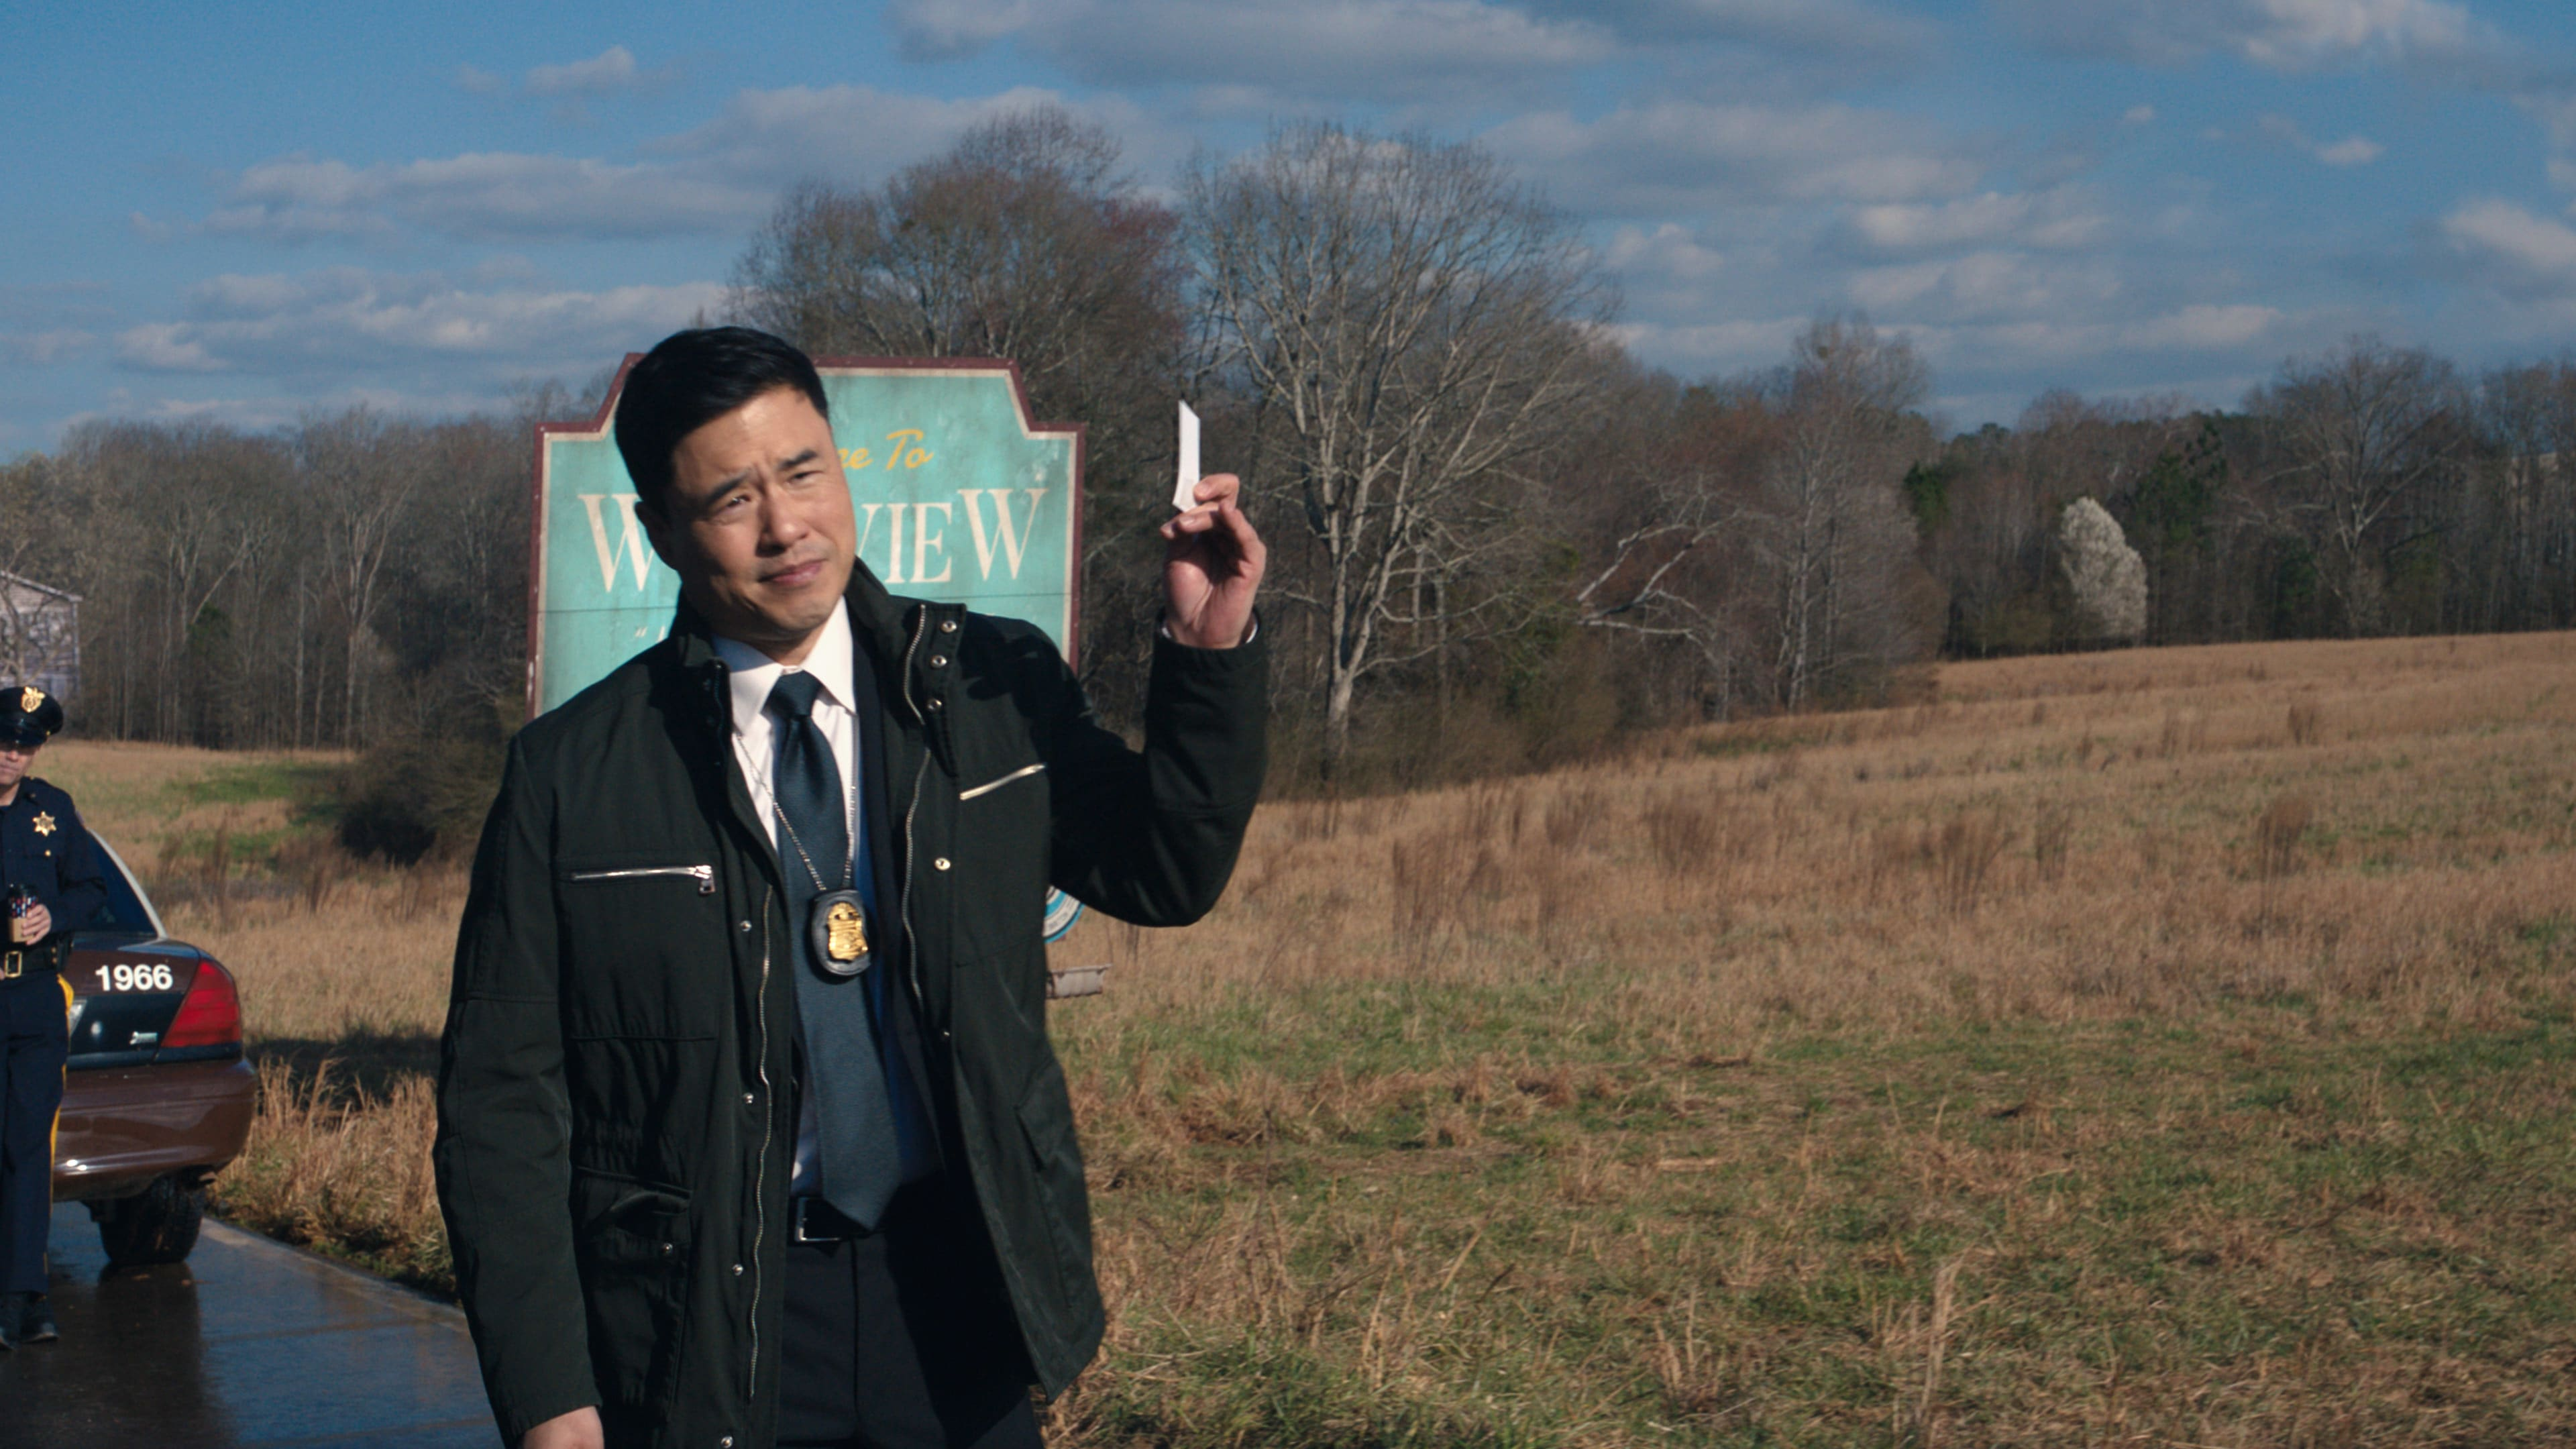 Randall Park as Jimmy Woo in Marvel Studios' WANDAVISION exclusively on Disney+. Photo courtesy of Marvel Studios. ©Marvel Studios 2021. All Rights Reserved.